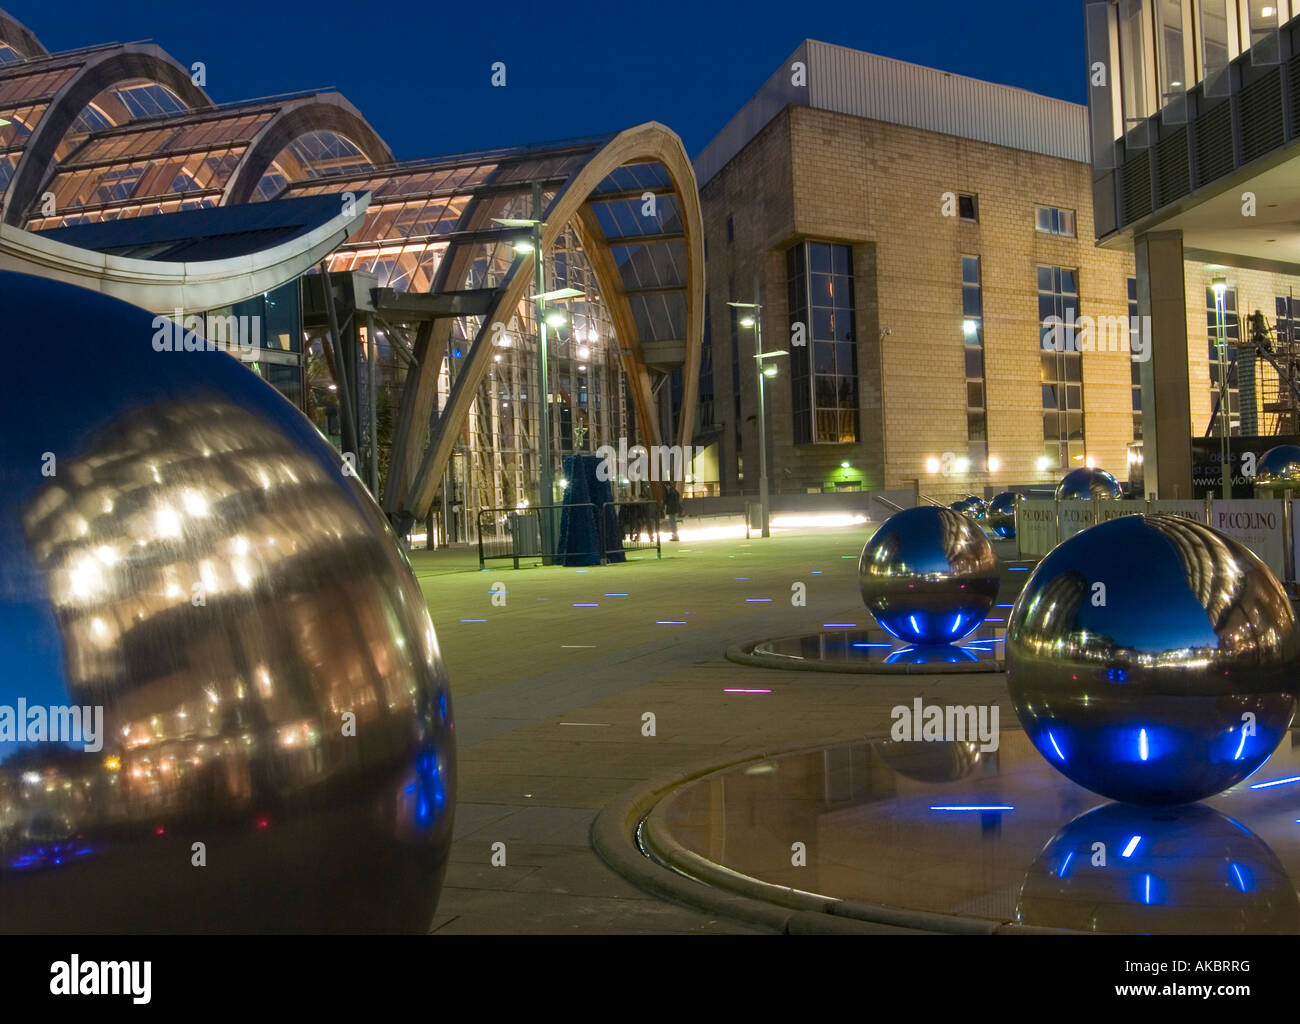 The Winter Garden And Millenium Square At Dusk With Spheres That